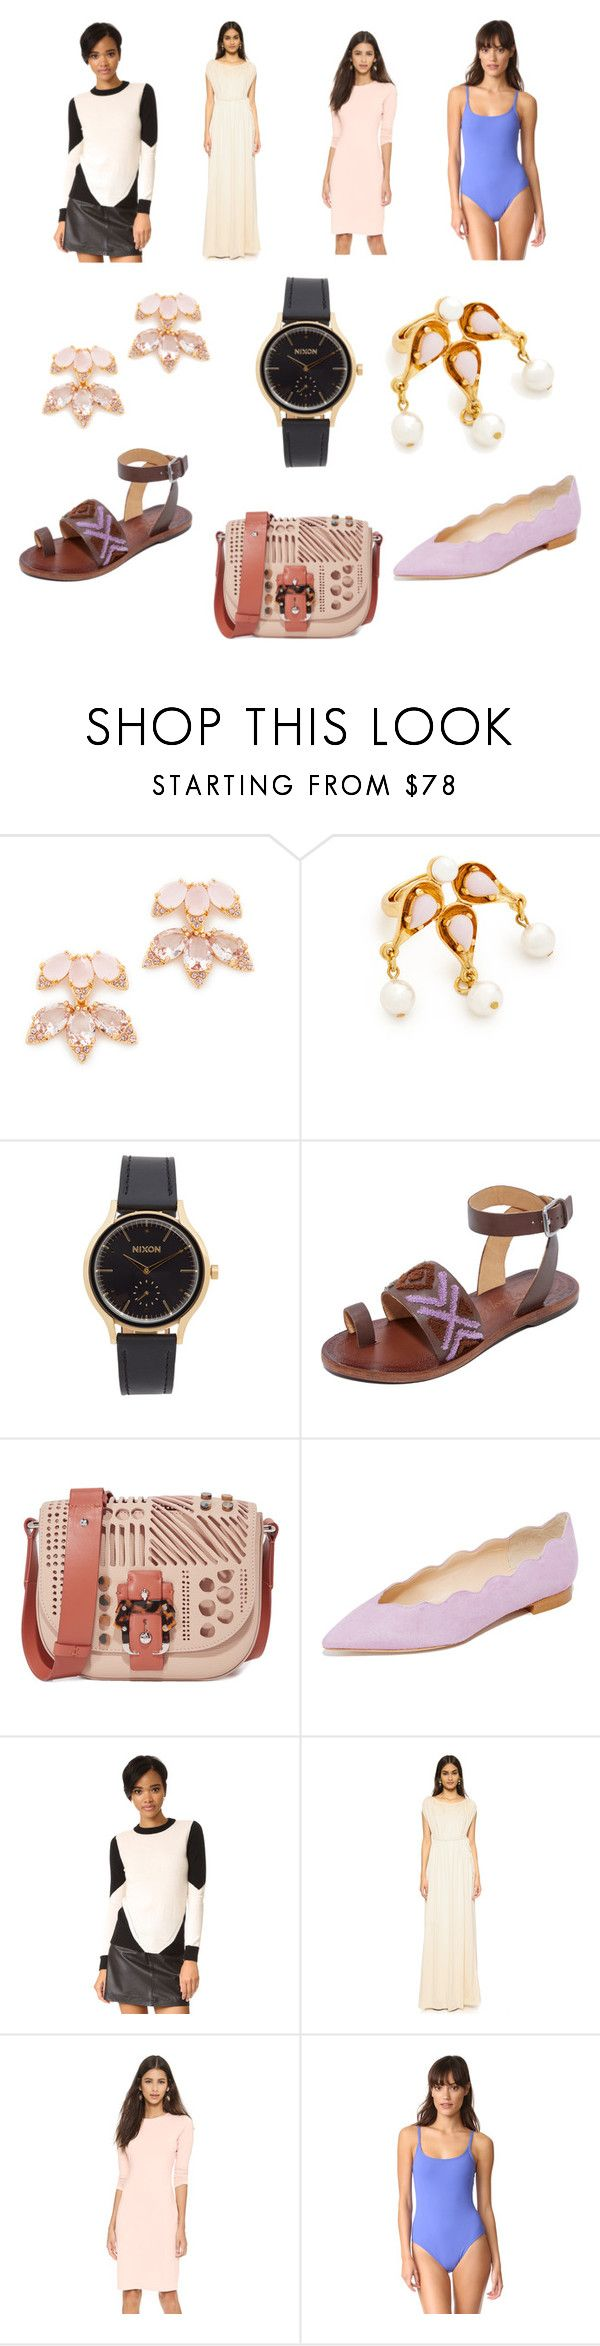 """new style"" by cate-jennifer ❤ liked on Polyvore featuring Kate Spade, Oscar de la Renta, Nixon, Free People, Paula Cademartori, Club Monaco, Top Secret Society, Rachel Pally, Susana Monaco and Karla Colletto"